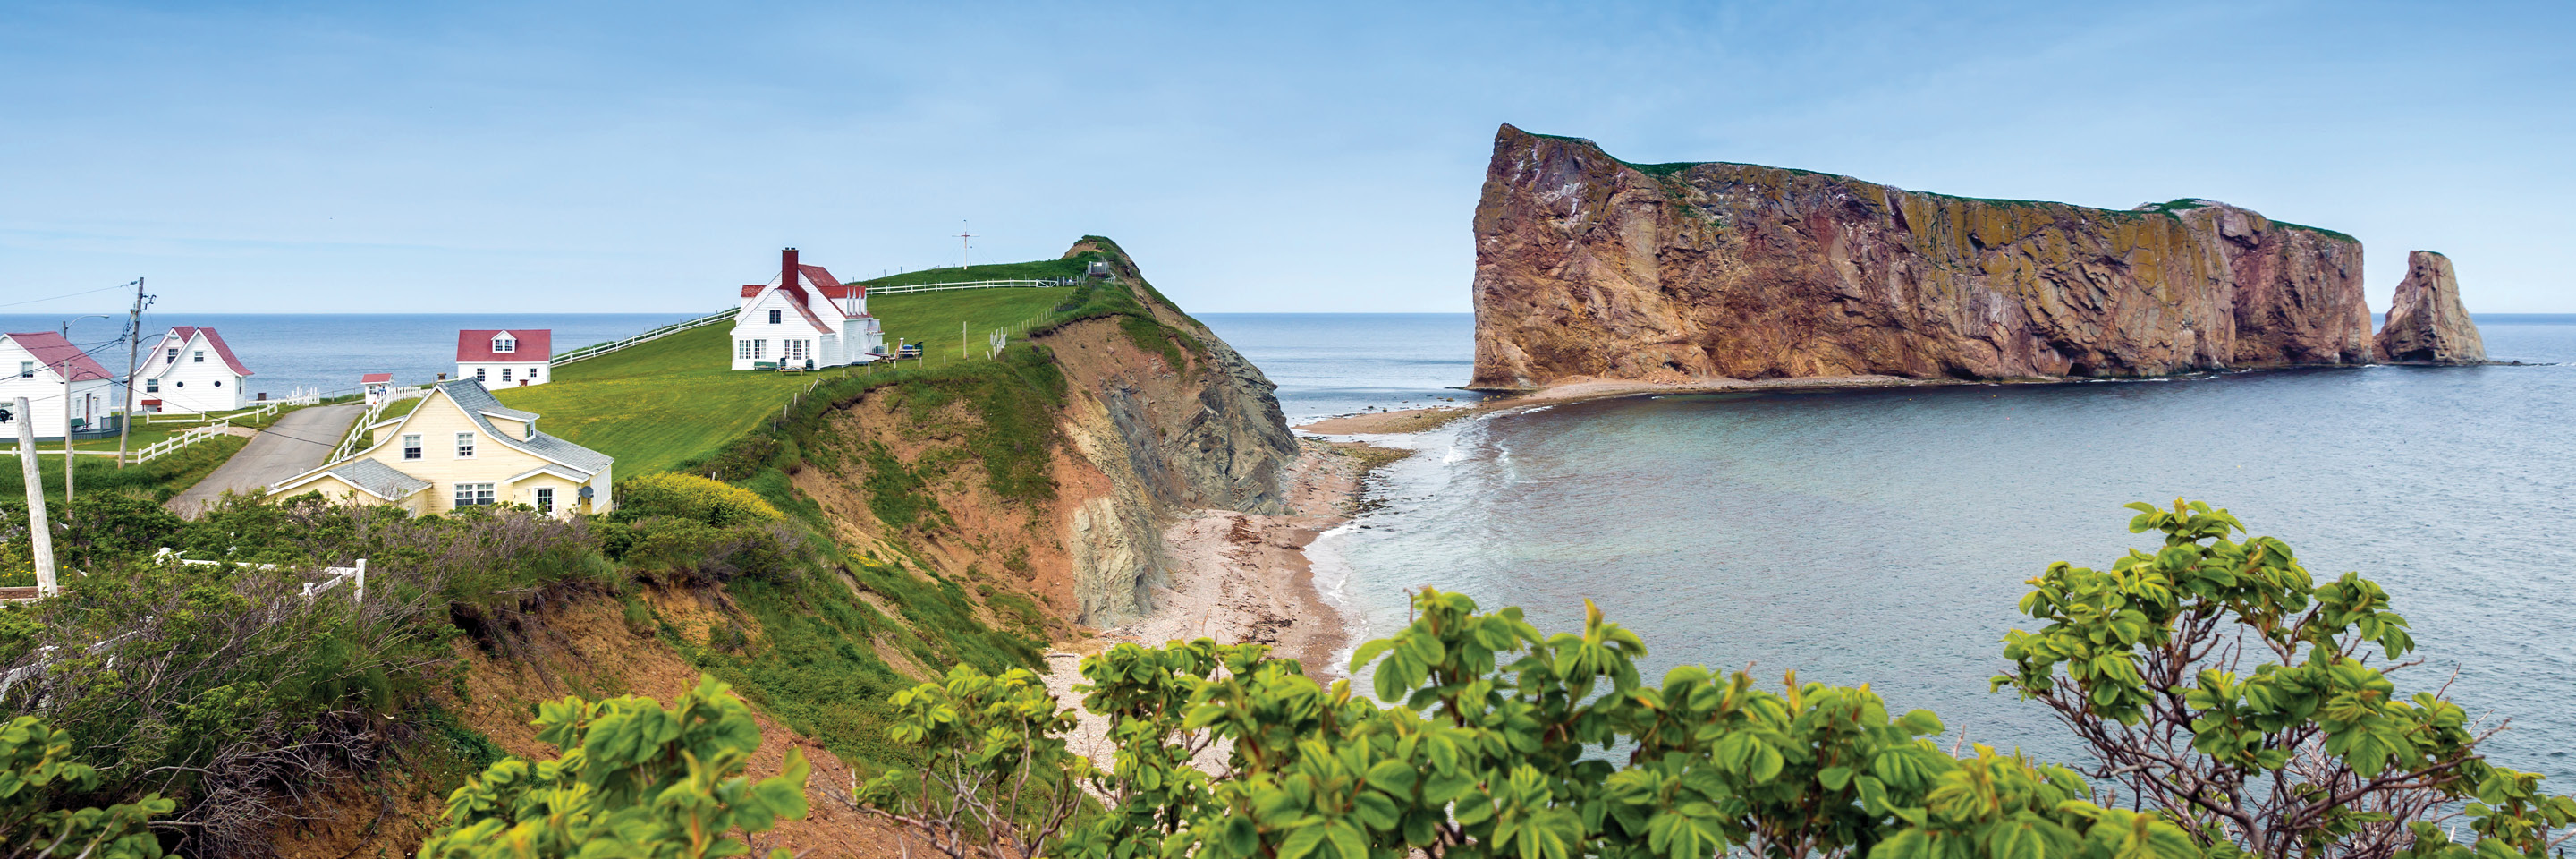 Quebec in Depth with the Gaspe Peninsula